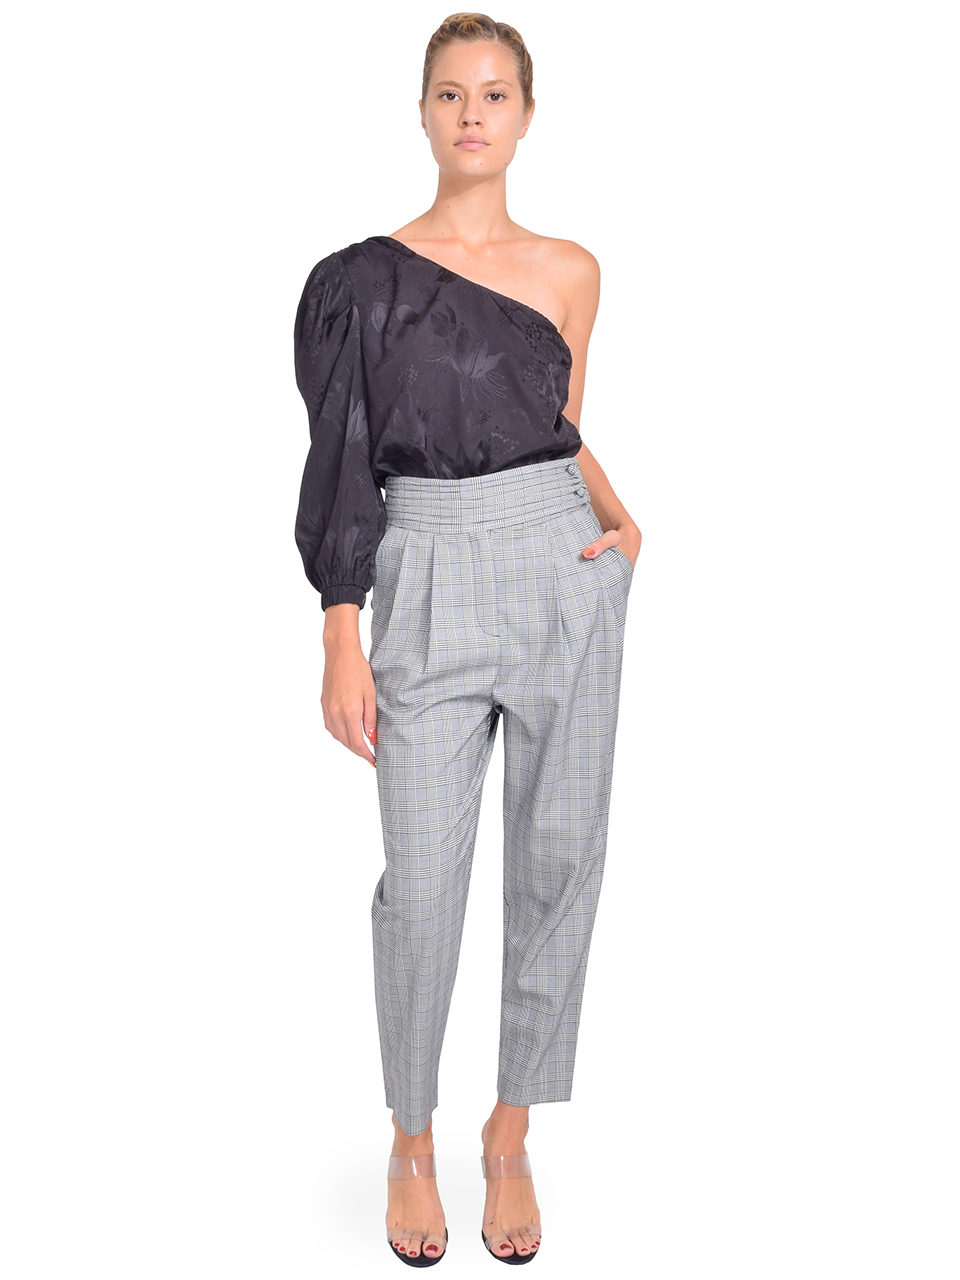 CINQ A SEPT Serenity Pant in Houndstooth Plaid Full Outfit